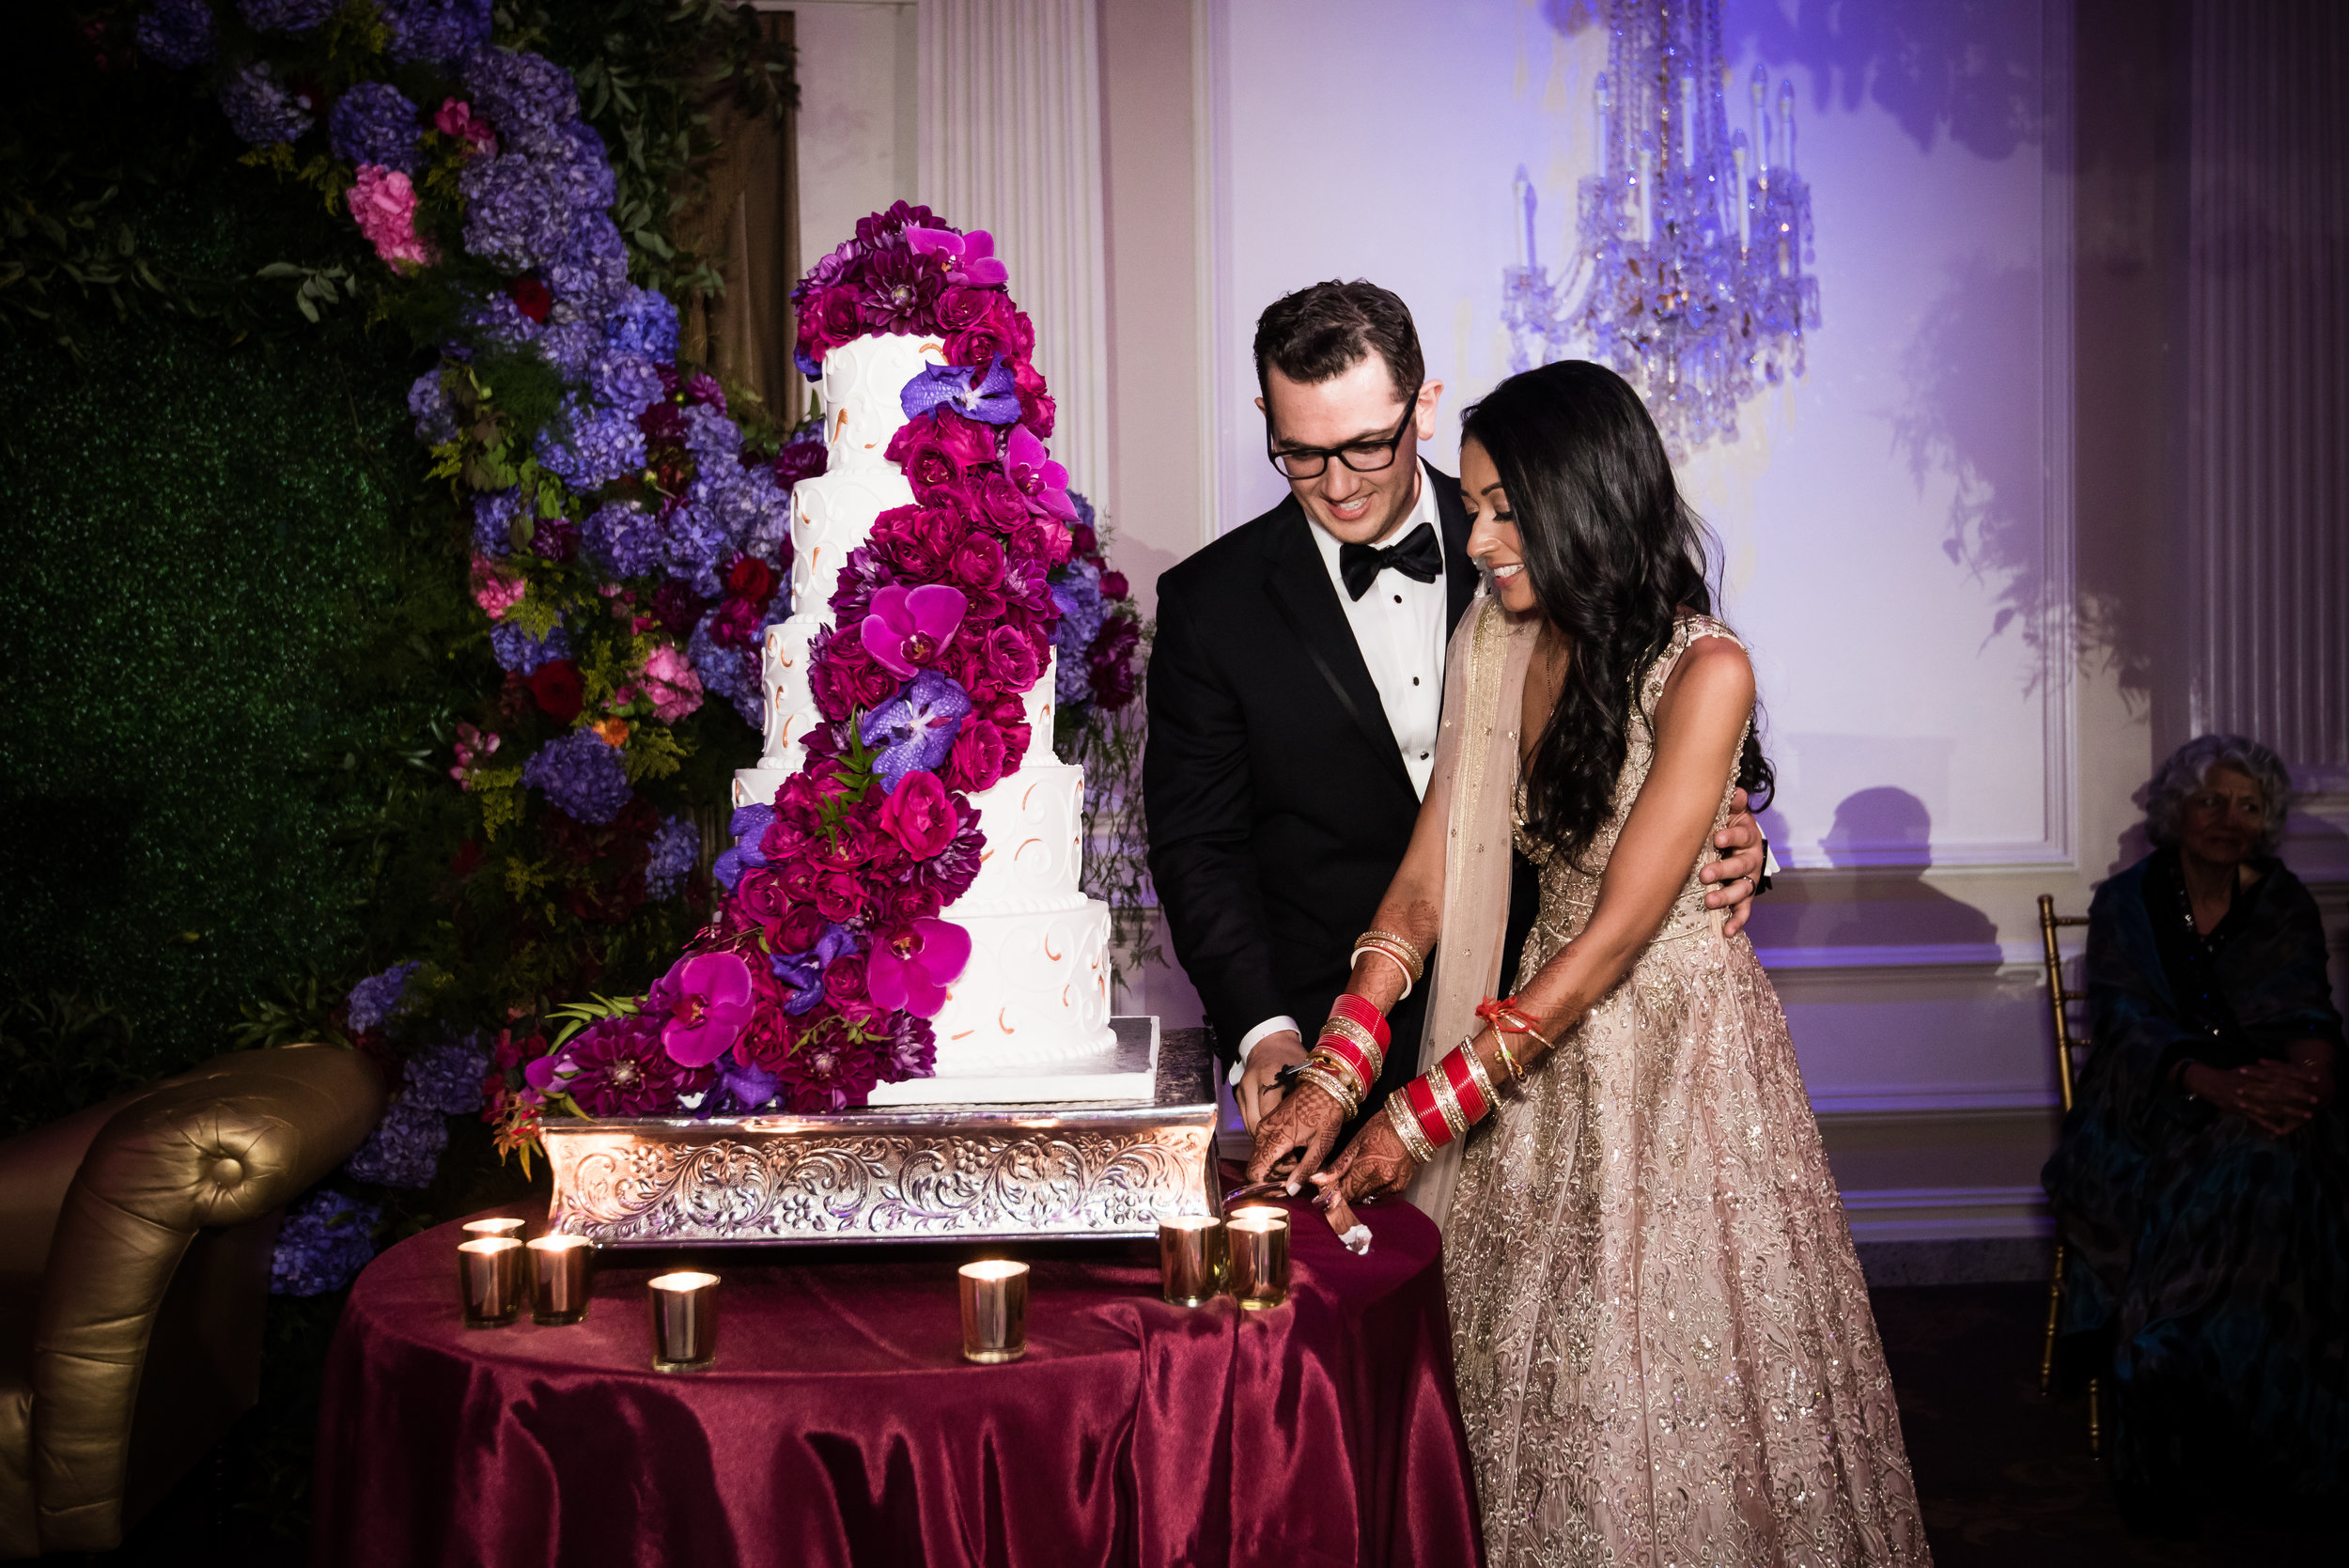 INDIAN WEDDING RECEPTION BRIDE AND GROOM CUTTING CAKE.jpg